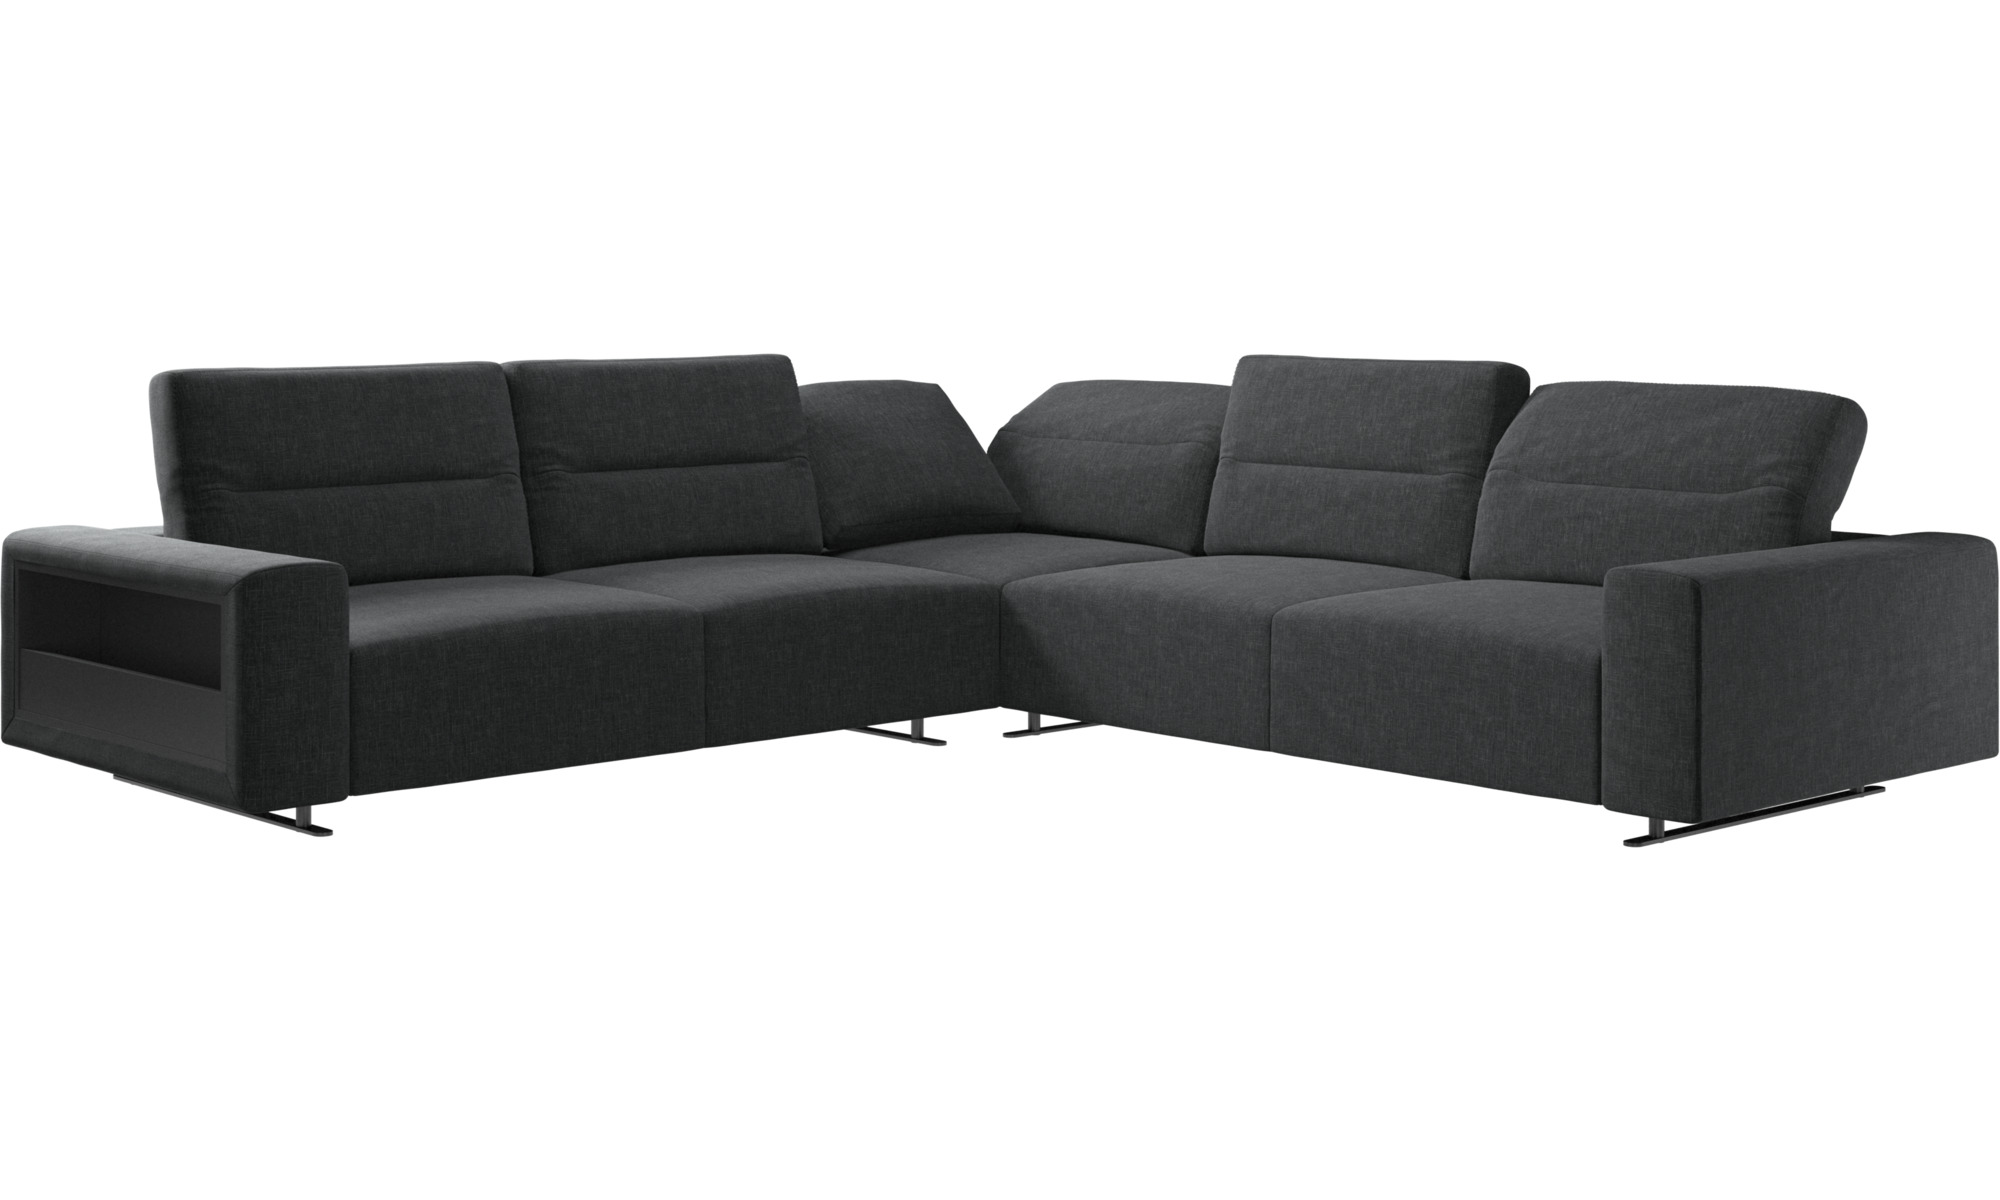 Hampton corner sofa with adjustable back and storage on left side